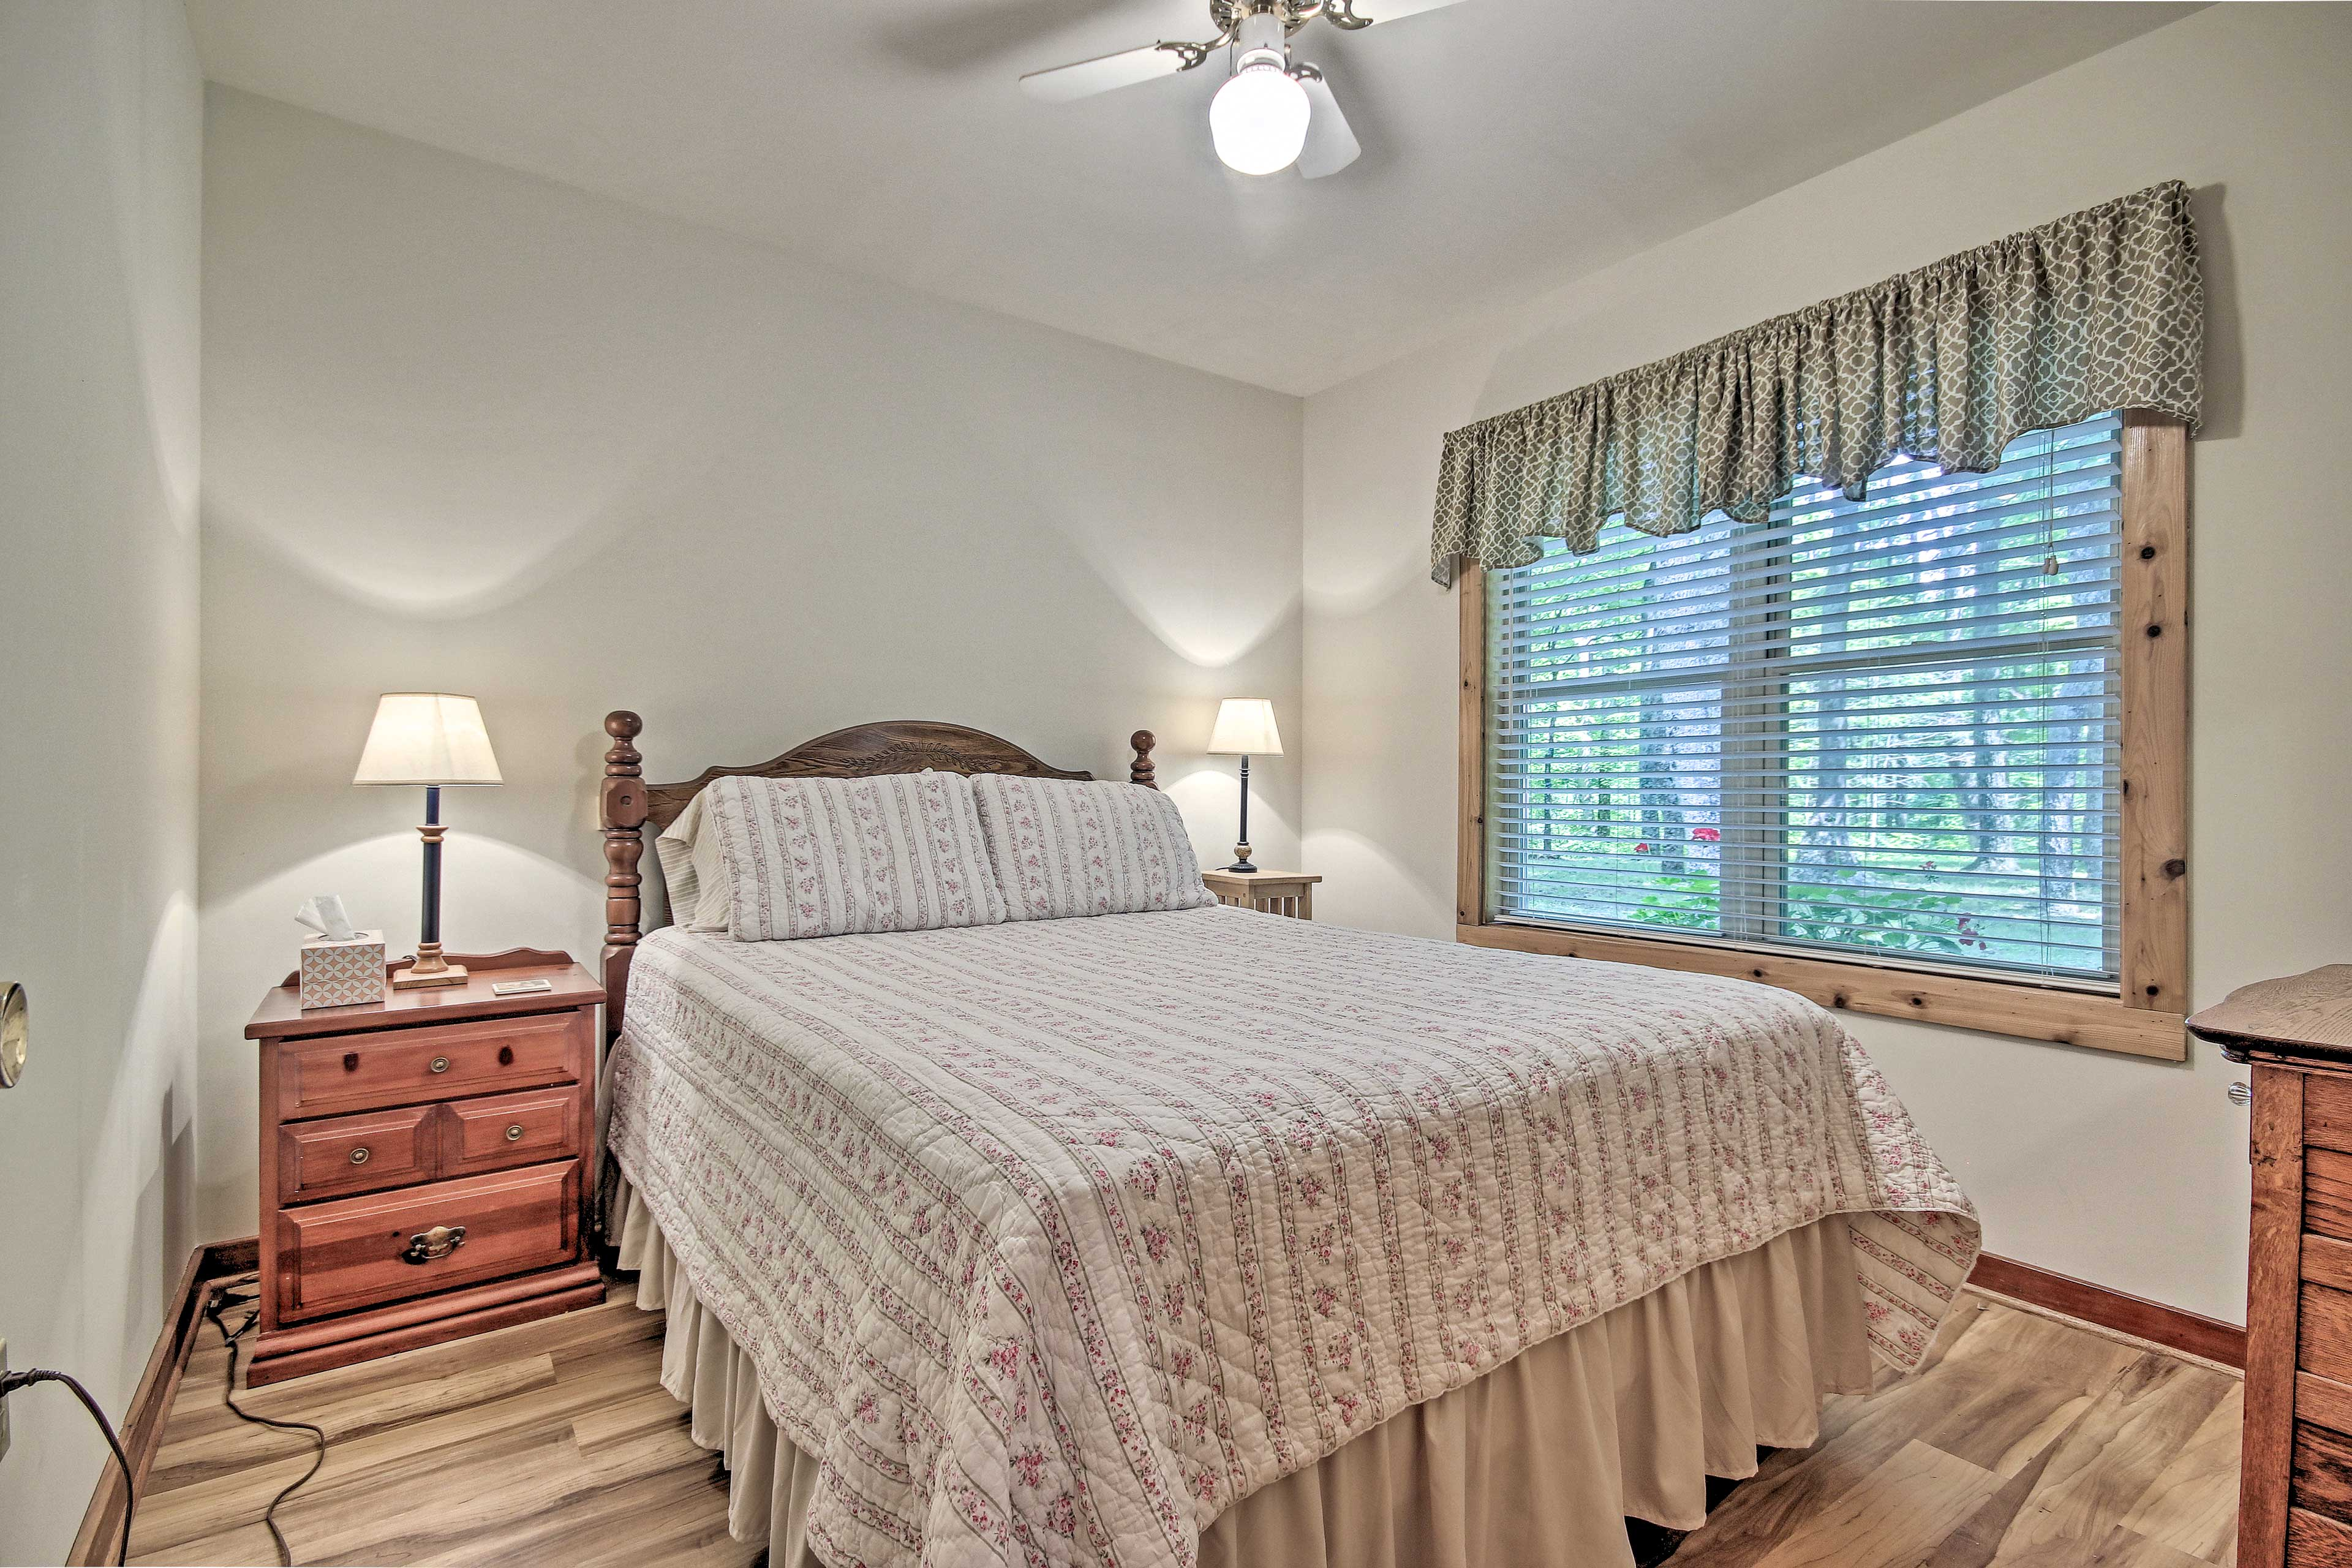 This room features a queen bed and storage space in the nightstand or dresser.